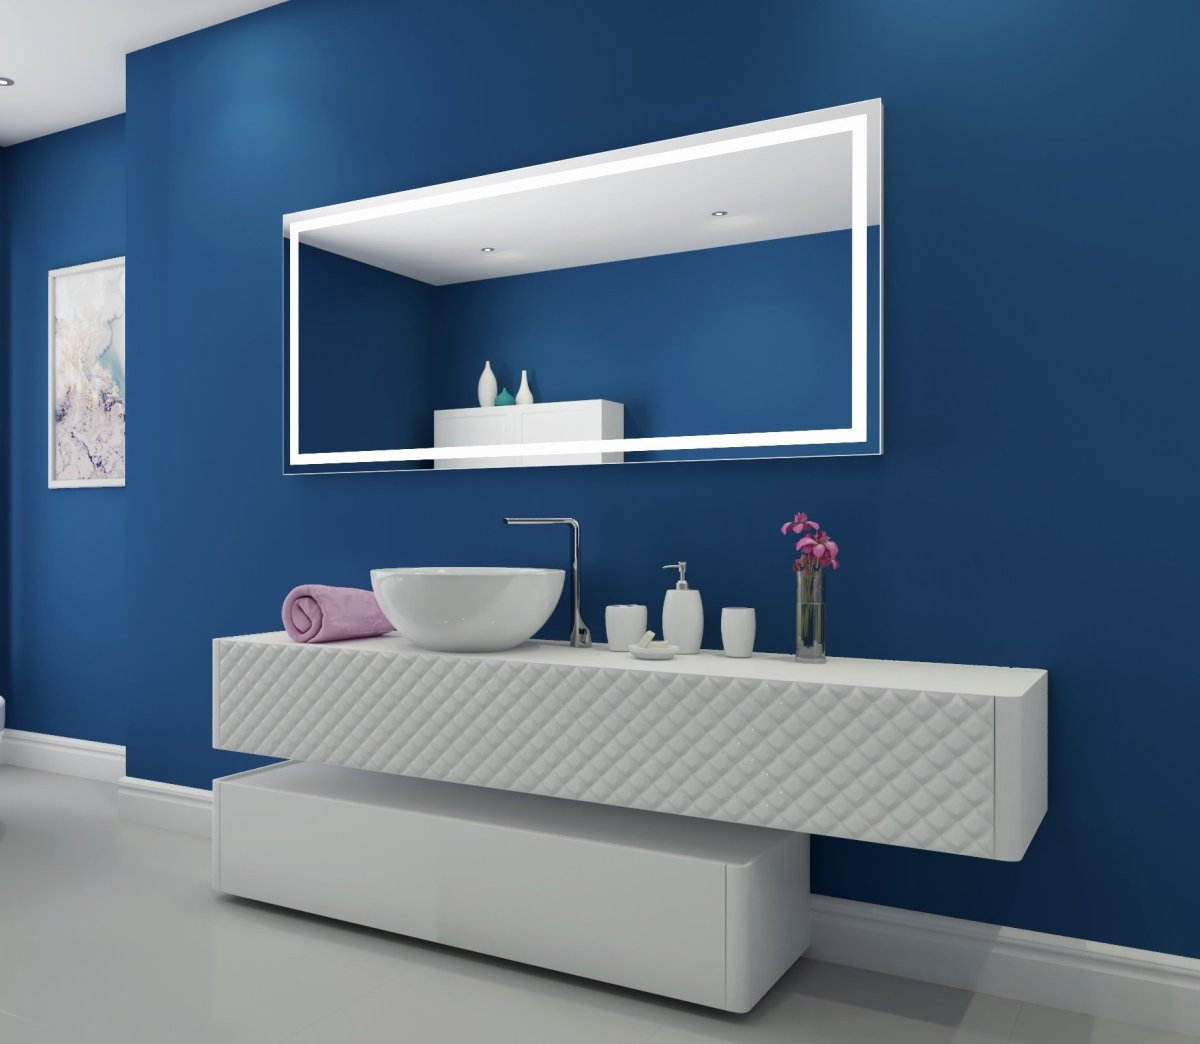 illuminated, bathroom, mirror, double vanity